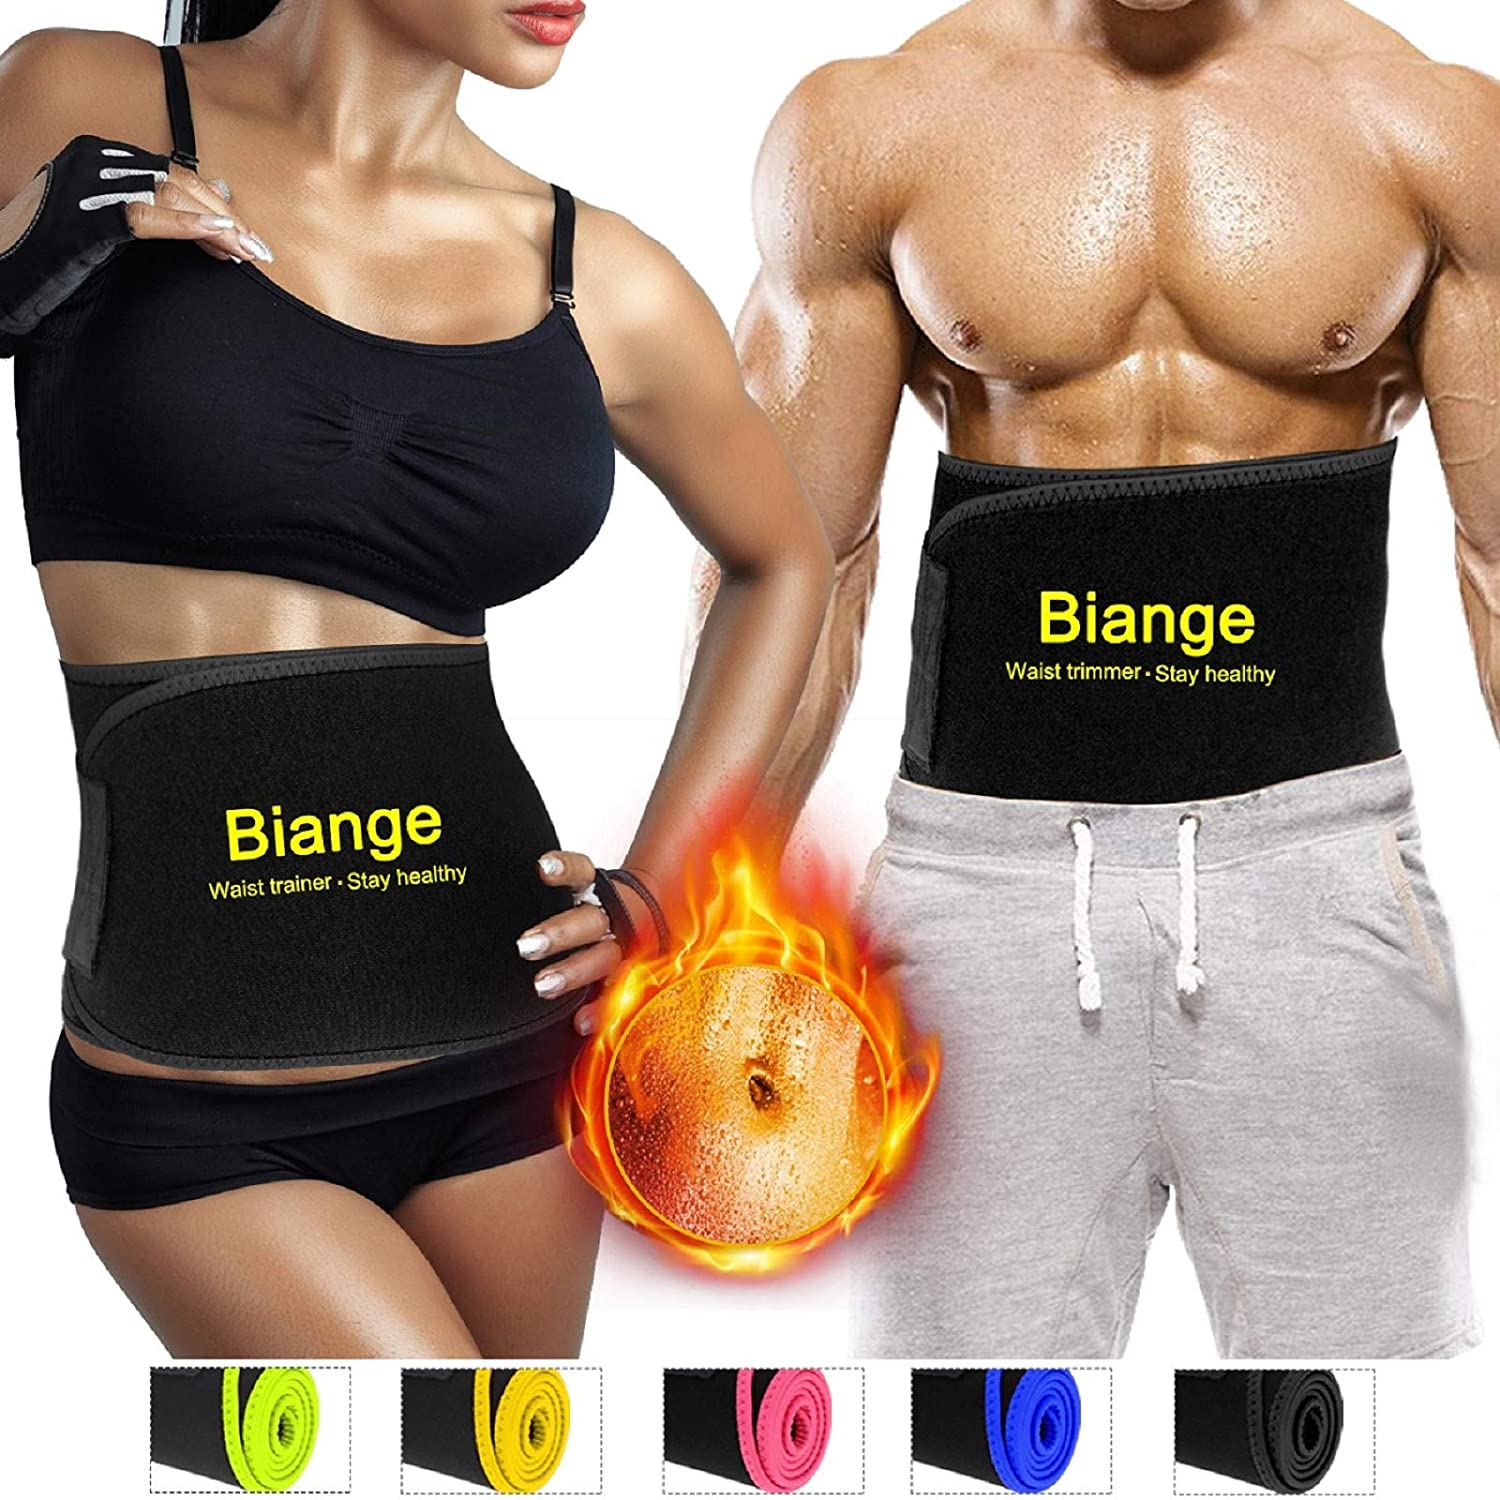 3e539d860a Amazon.com  Biange Waist Trimmer Belt for Women   Men